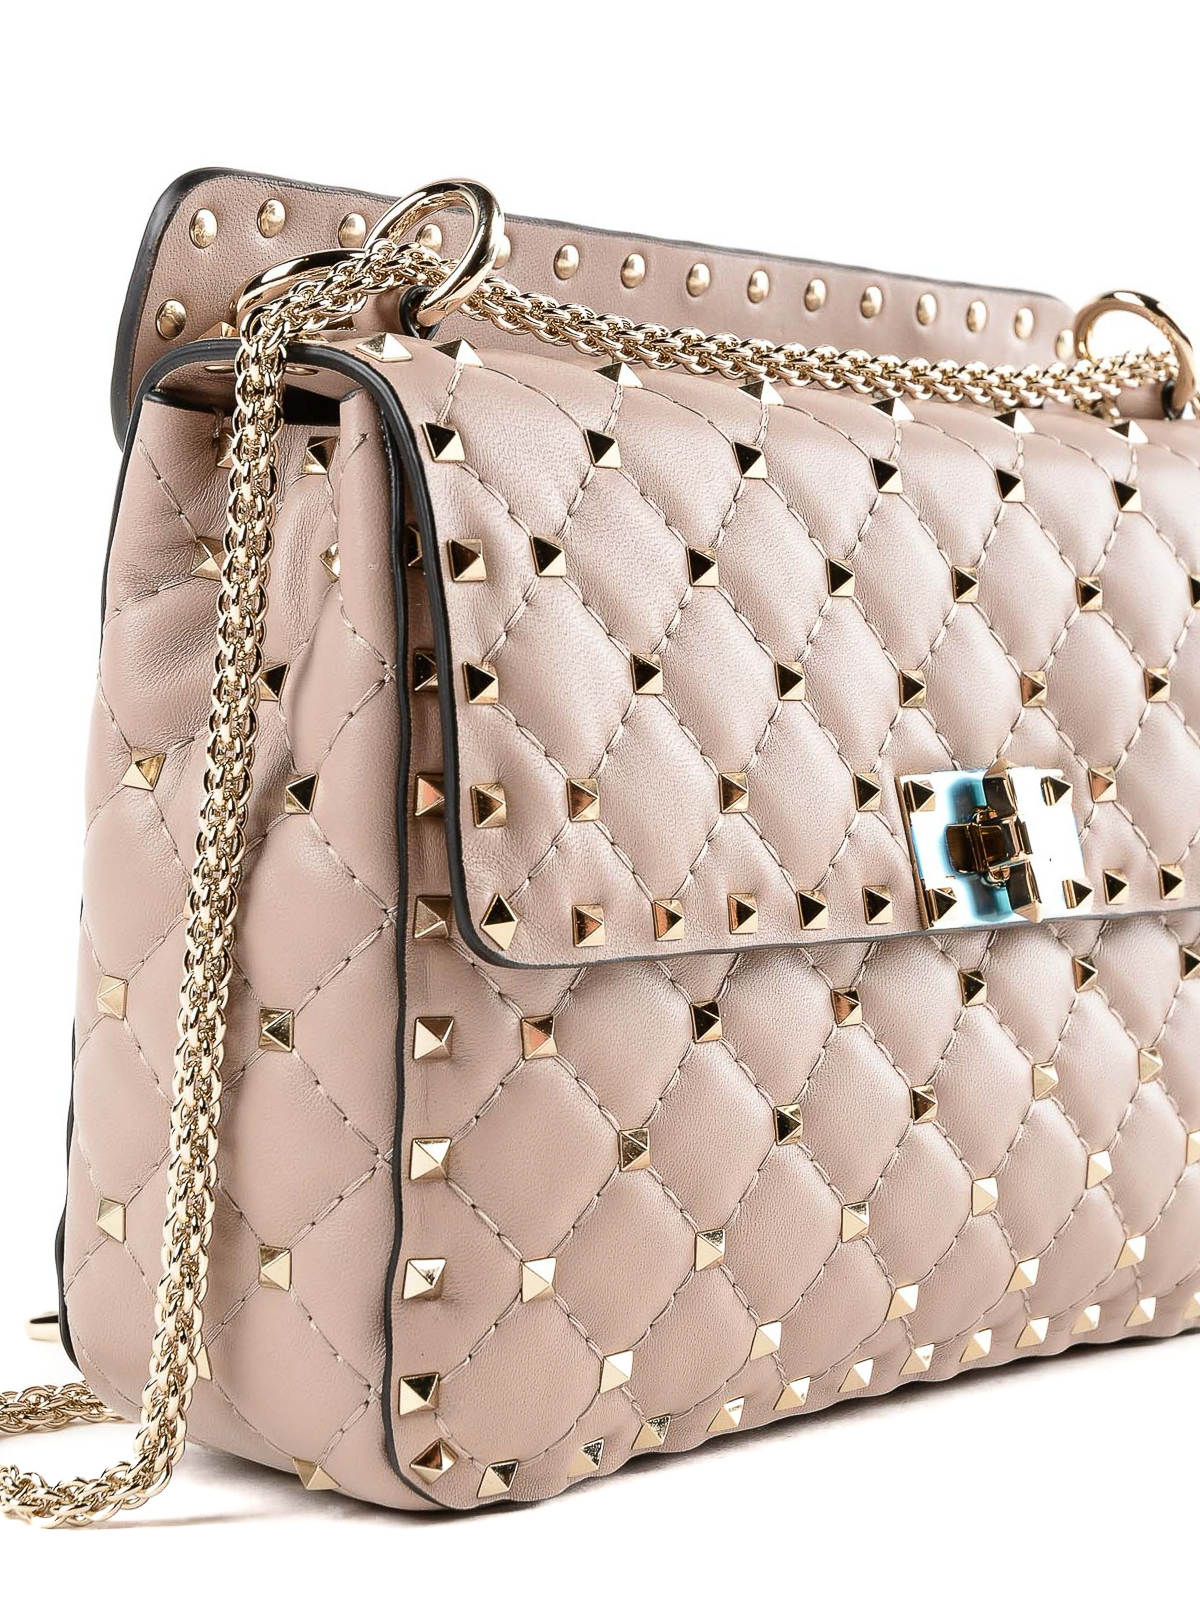 2b874b1088 Valentino Garavani - Rockstud Spike poudre medium bag - shoulder ...